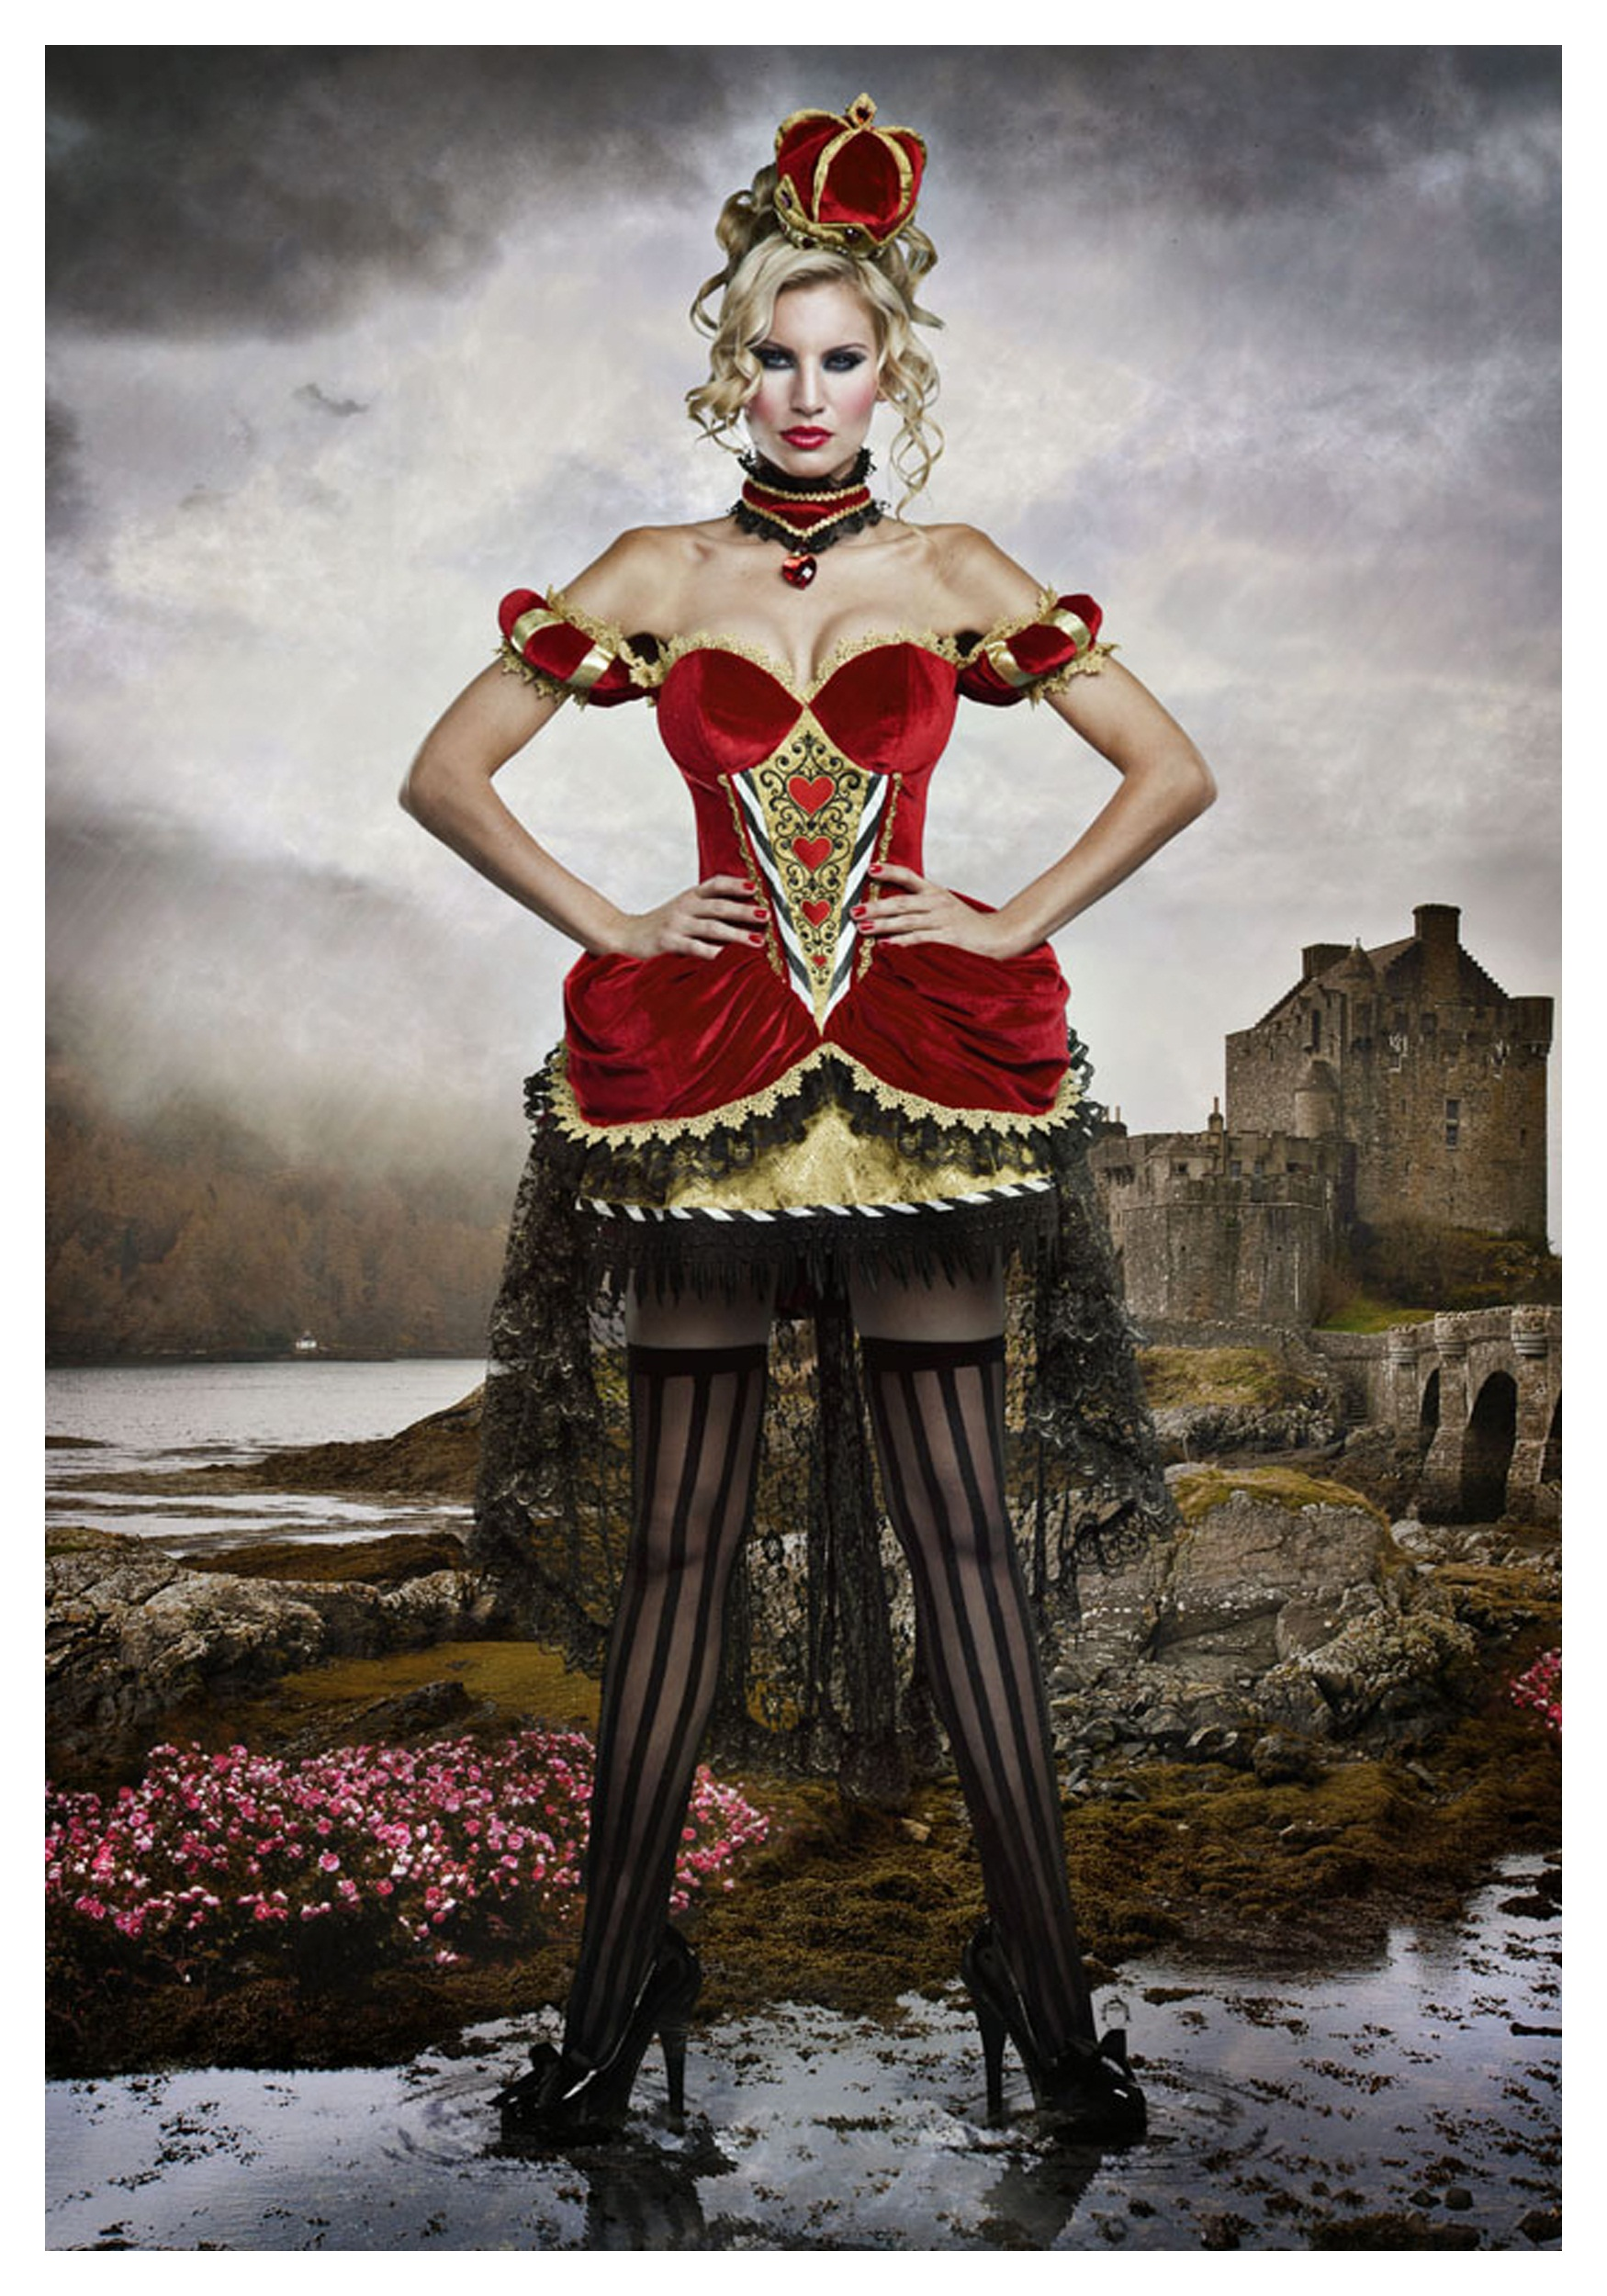 deluxe queen of hearts costume halloween costume ideas 2018